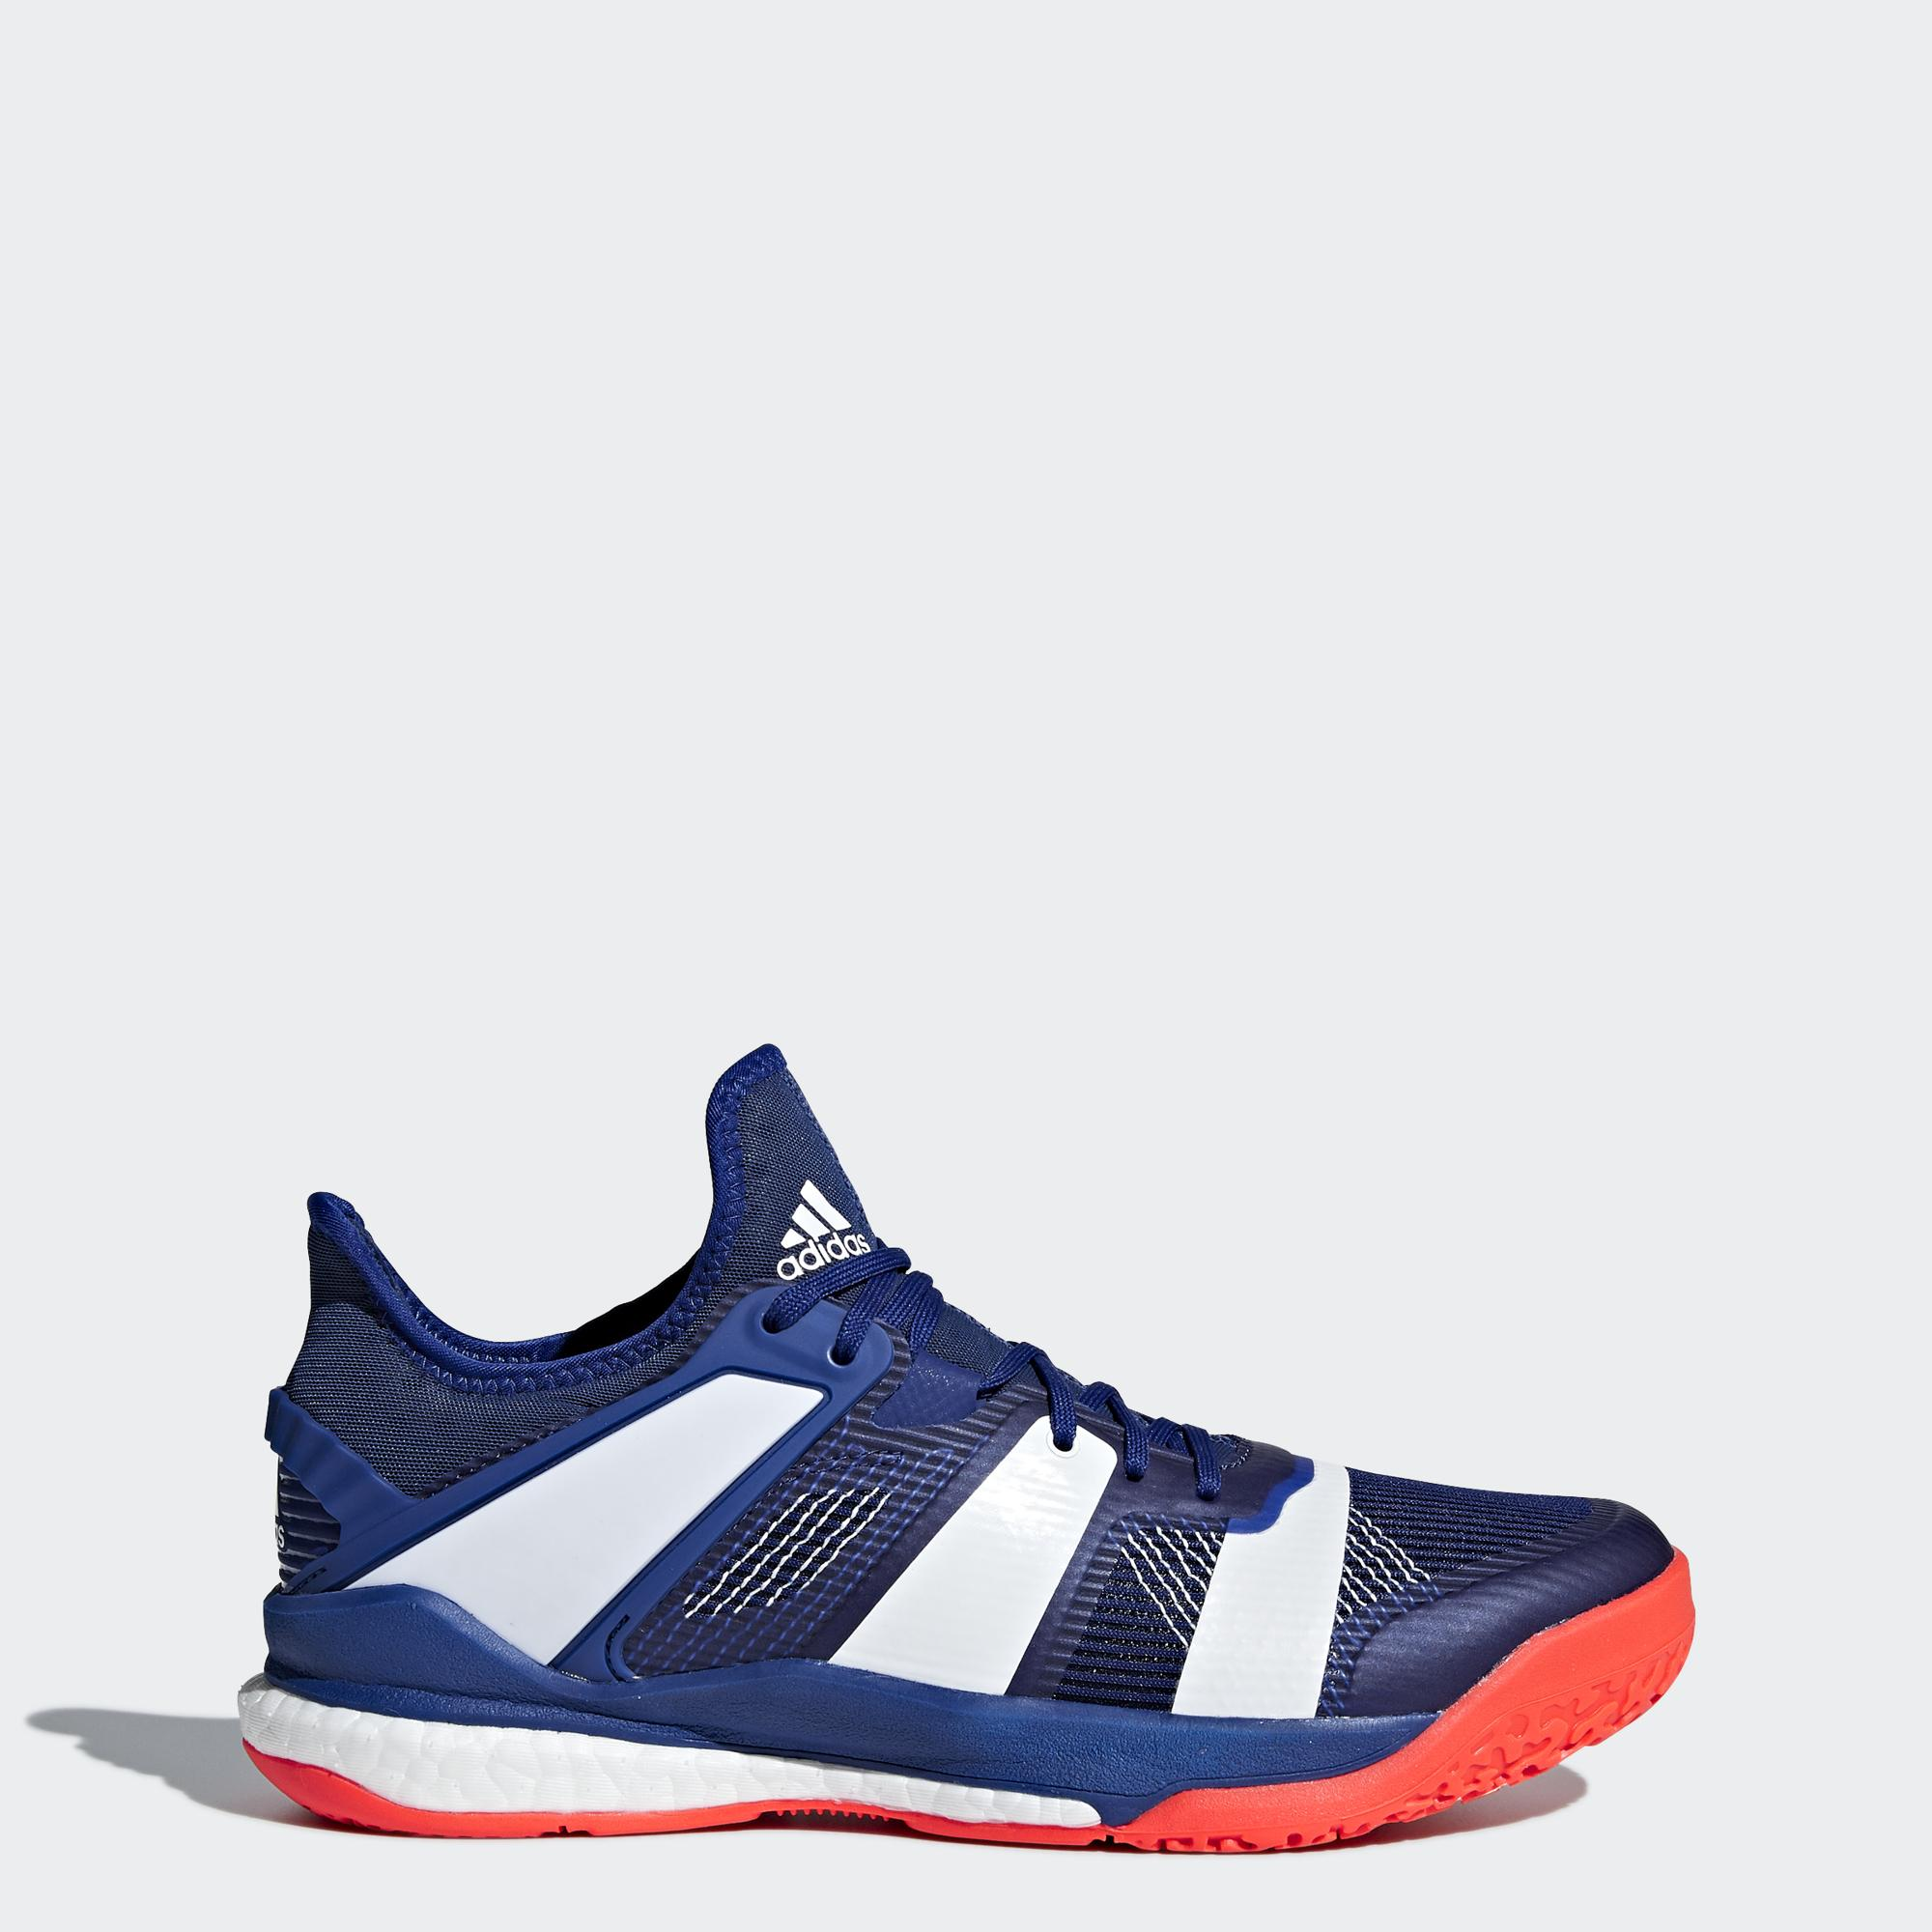 Adidas Mens Stabil X Boost Indoor Court Shoes - Legend Ink White Red -  Tennisnuts.com 7626dbe6c